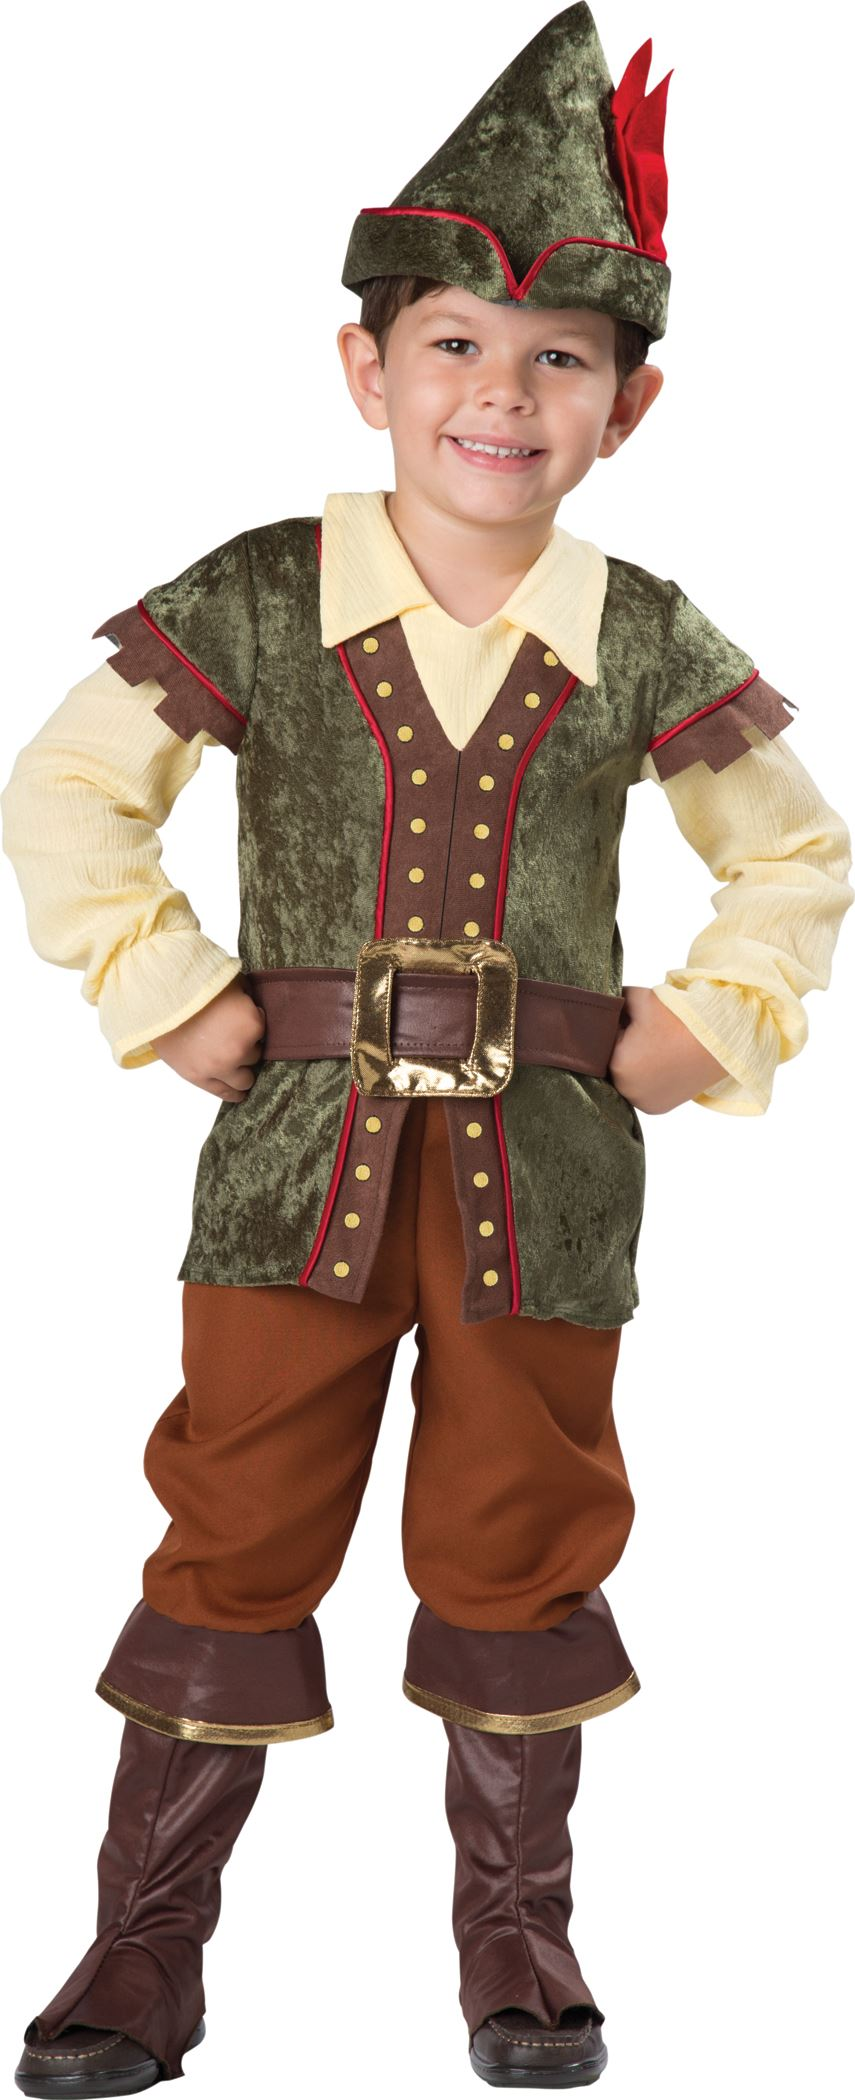 028184504ba ... Kids Robin Hood Toddler Costume. Click here to view Large Image